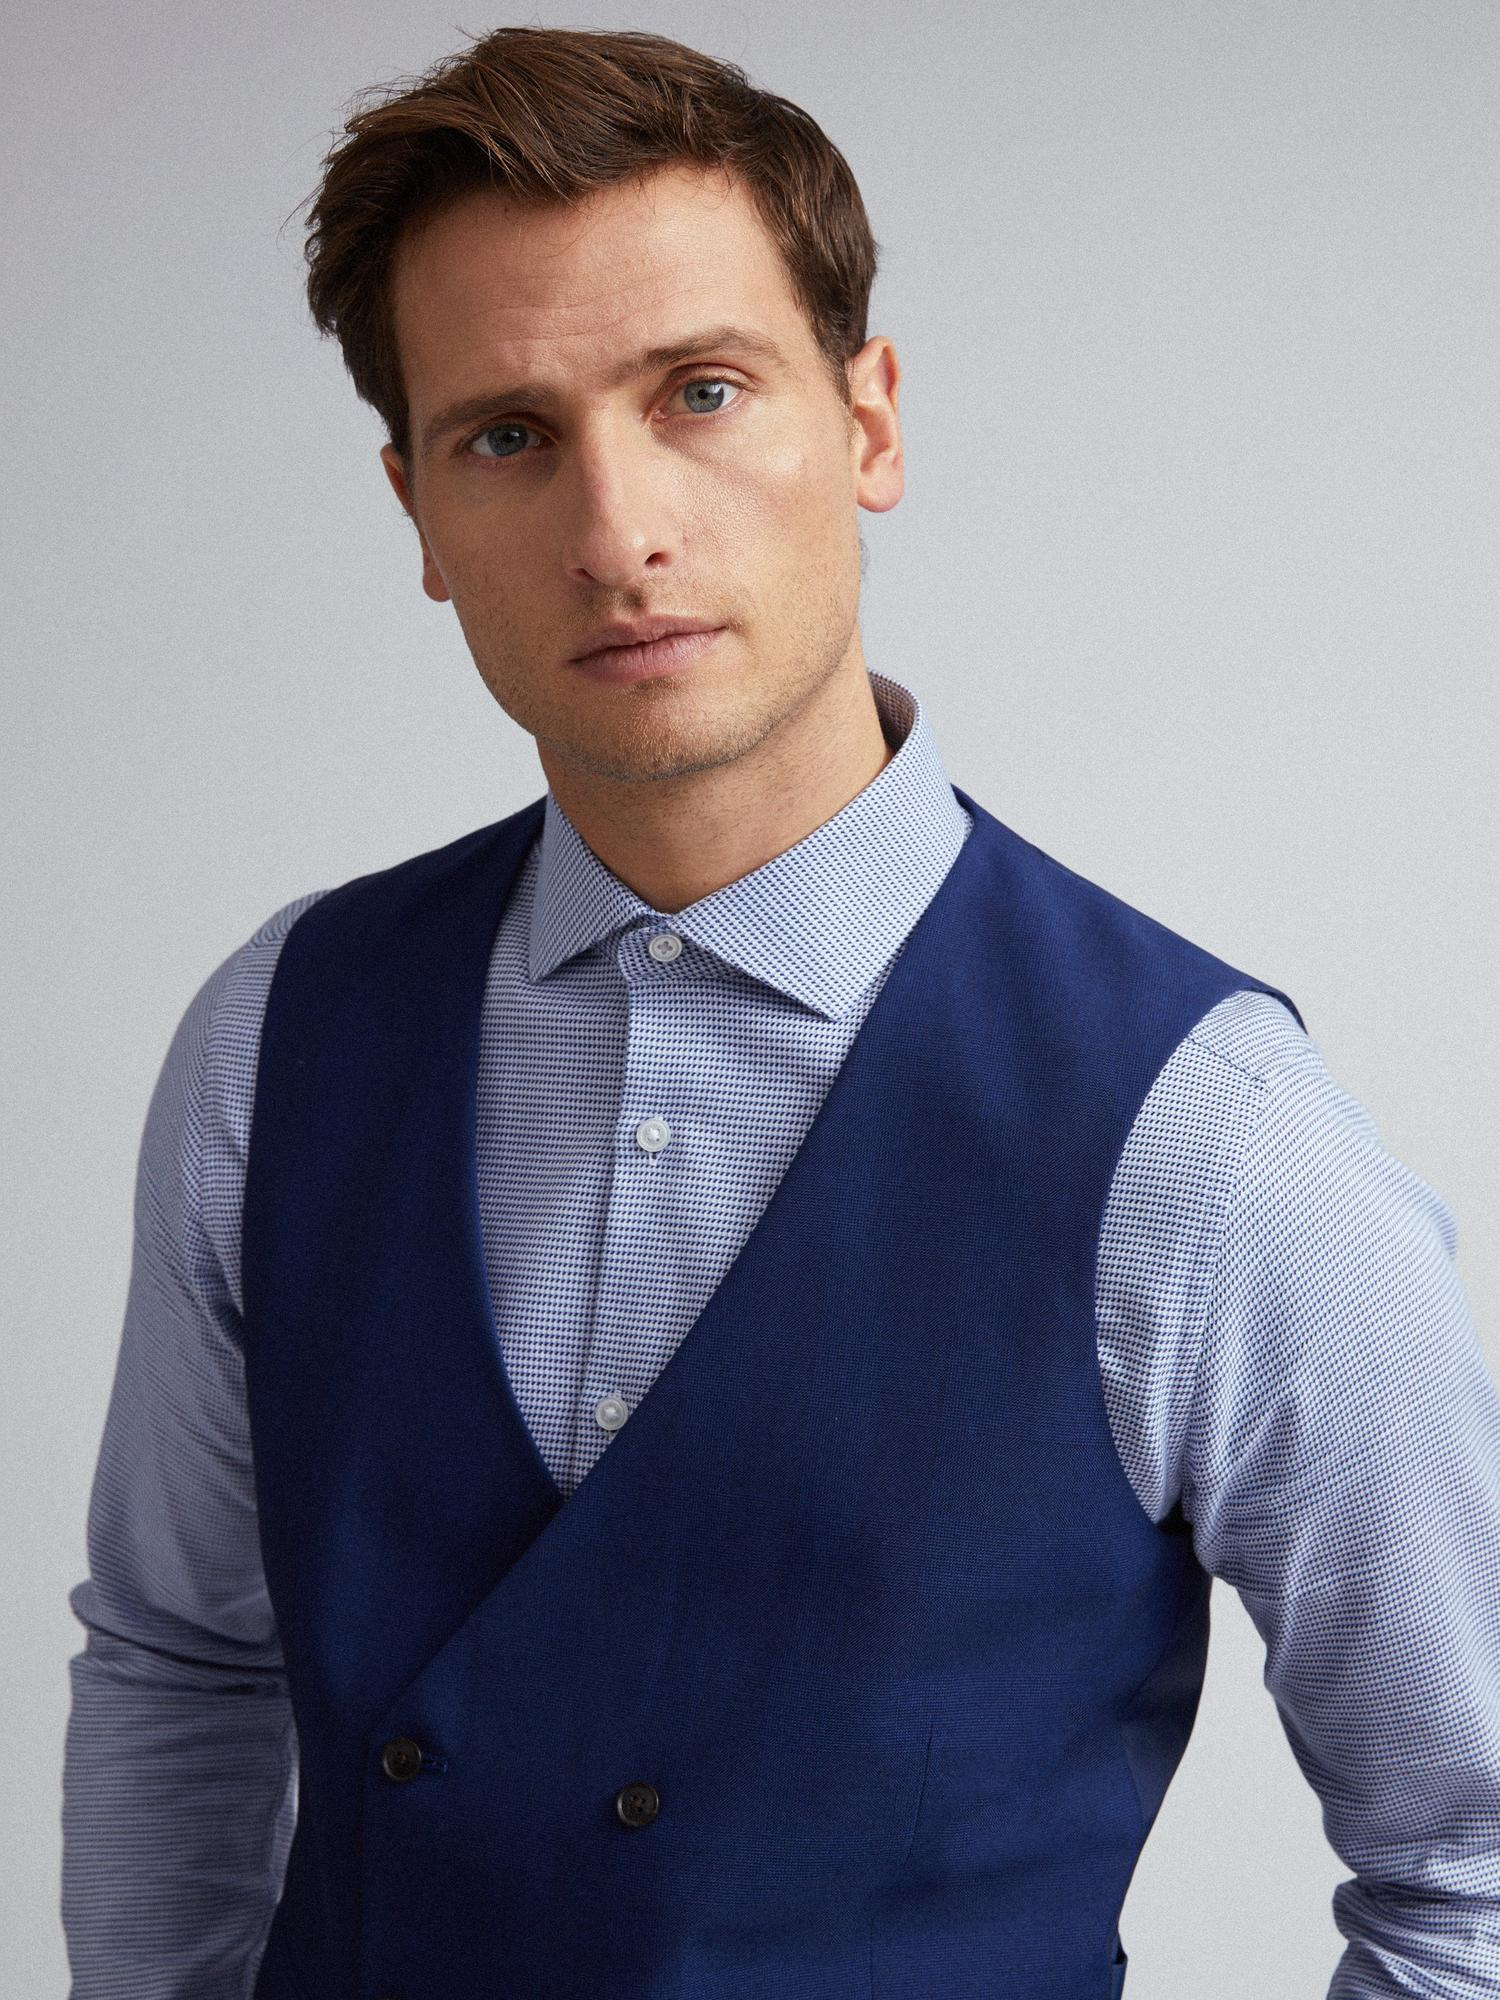 106 Blue Self Check Tailored Fit Suit Waistcoat image number 3